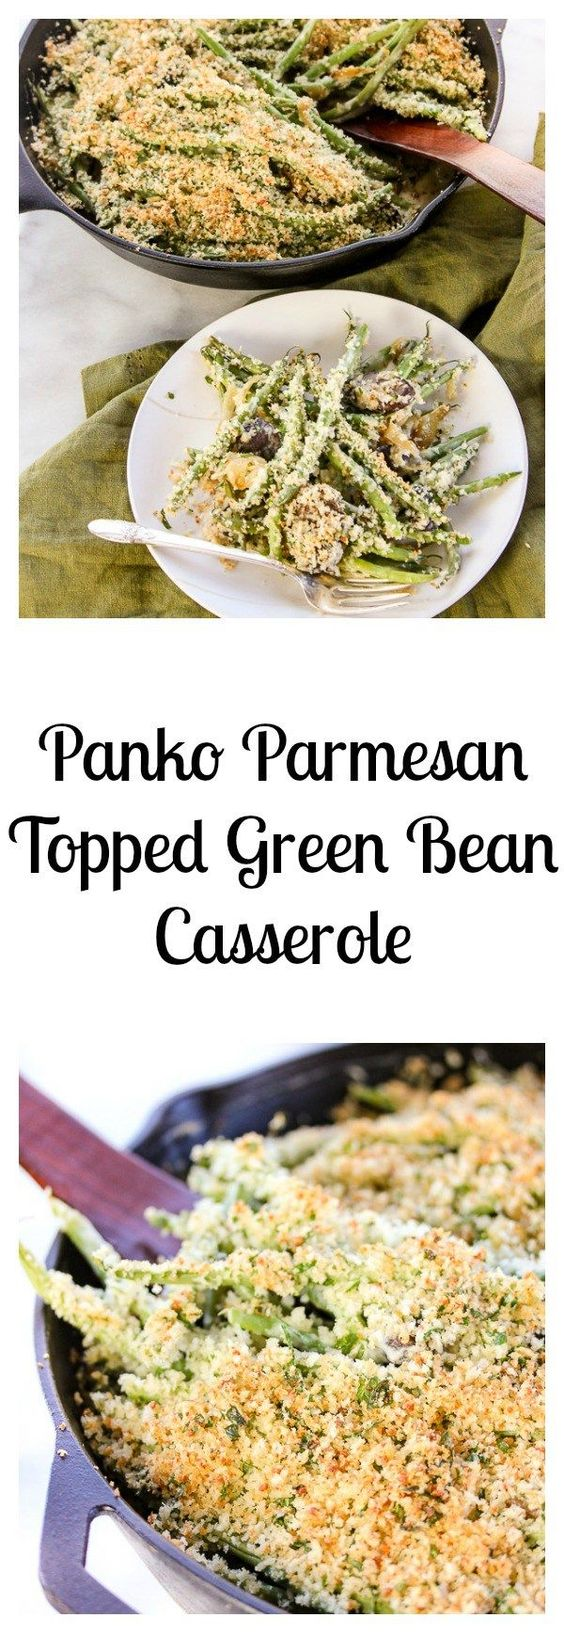 Parmesan Topped Green Bean Casserole made with #Kikkoman panko bread ...